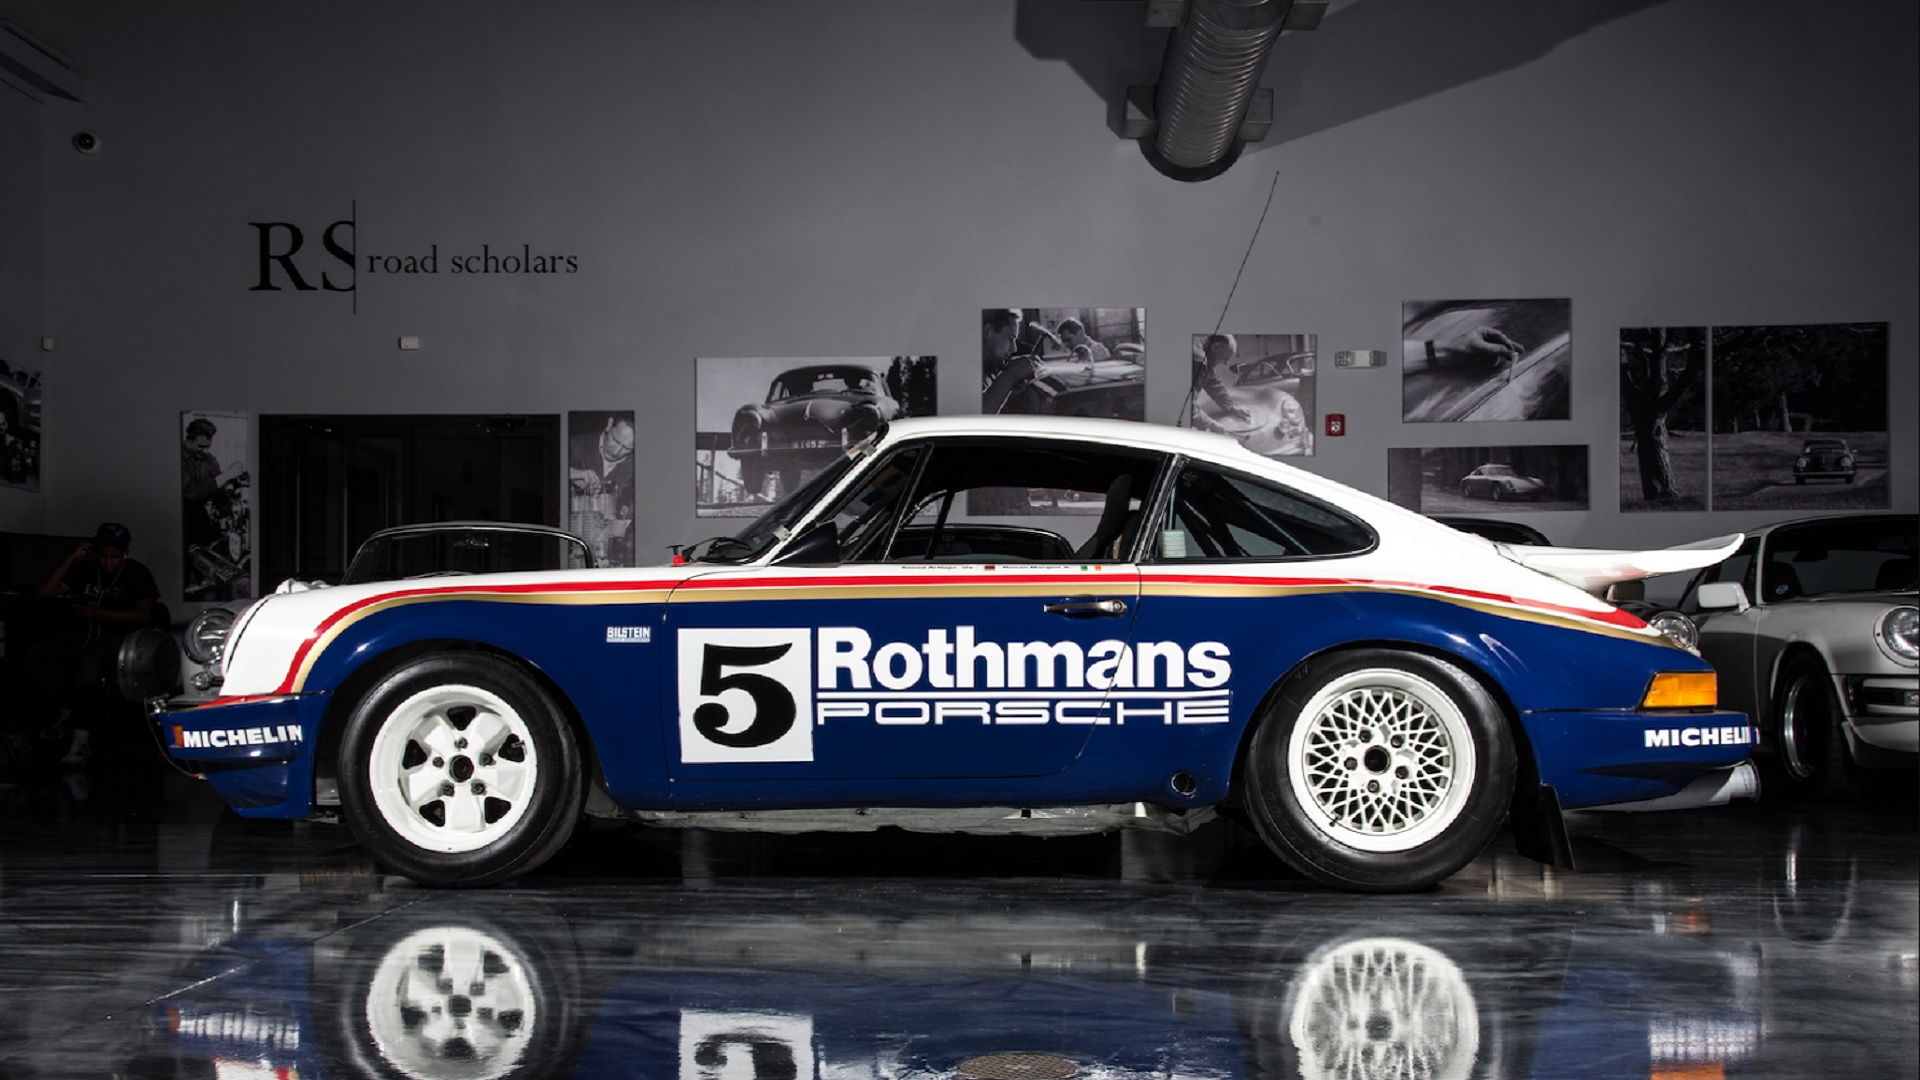 Porsche Sc Rs Rally Car A Tale Of Two Rothmans The Drive